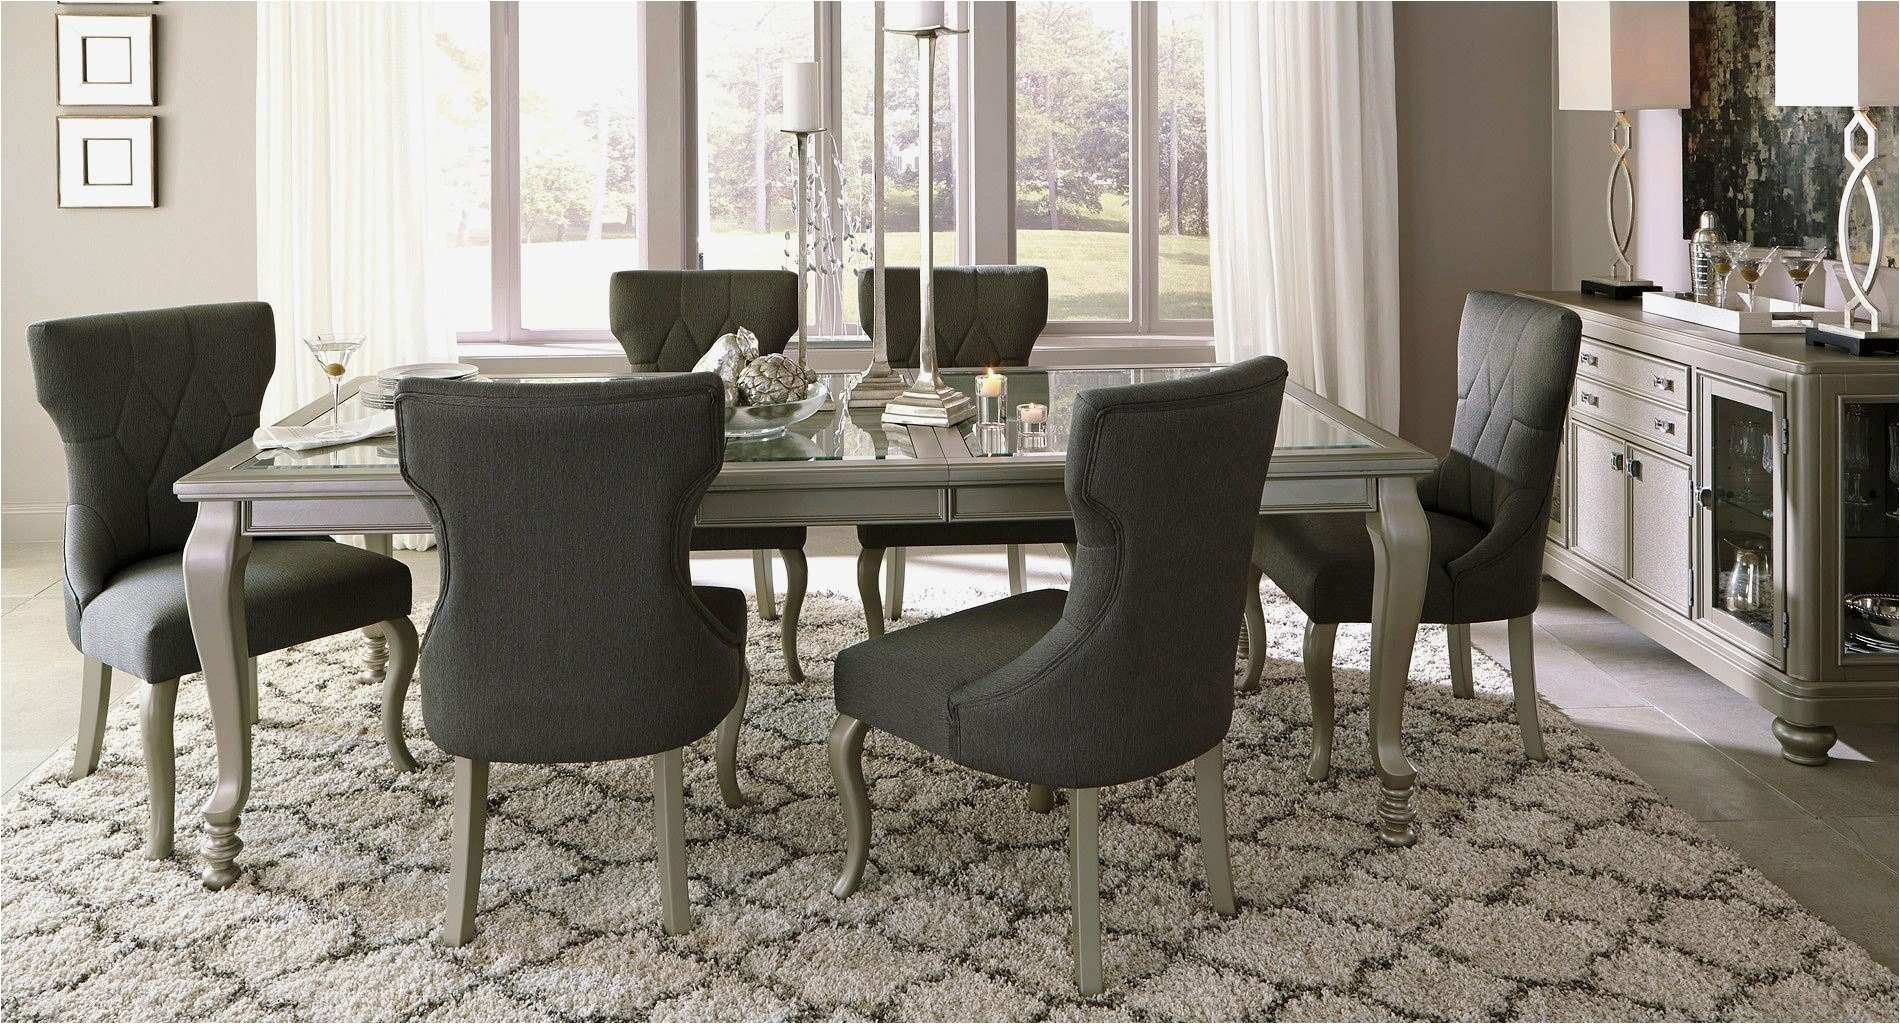 american furniture dining table fresh 4 kitchen chairs dining room designs stunning shaker chairs 0d photograph